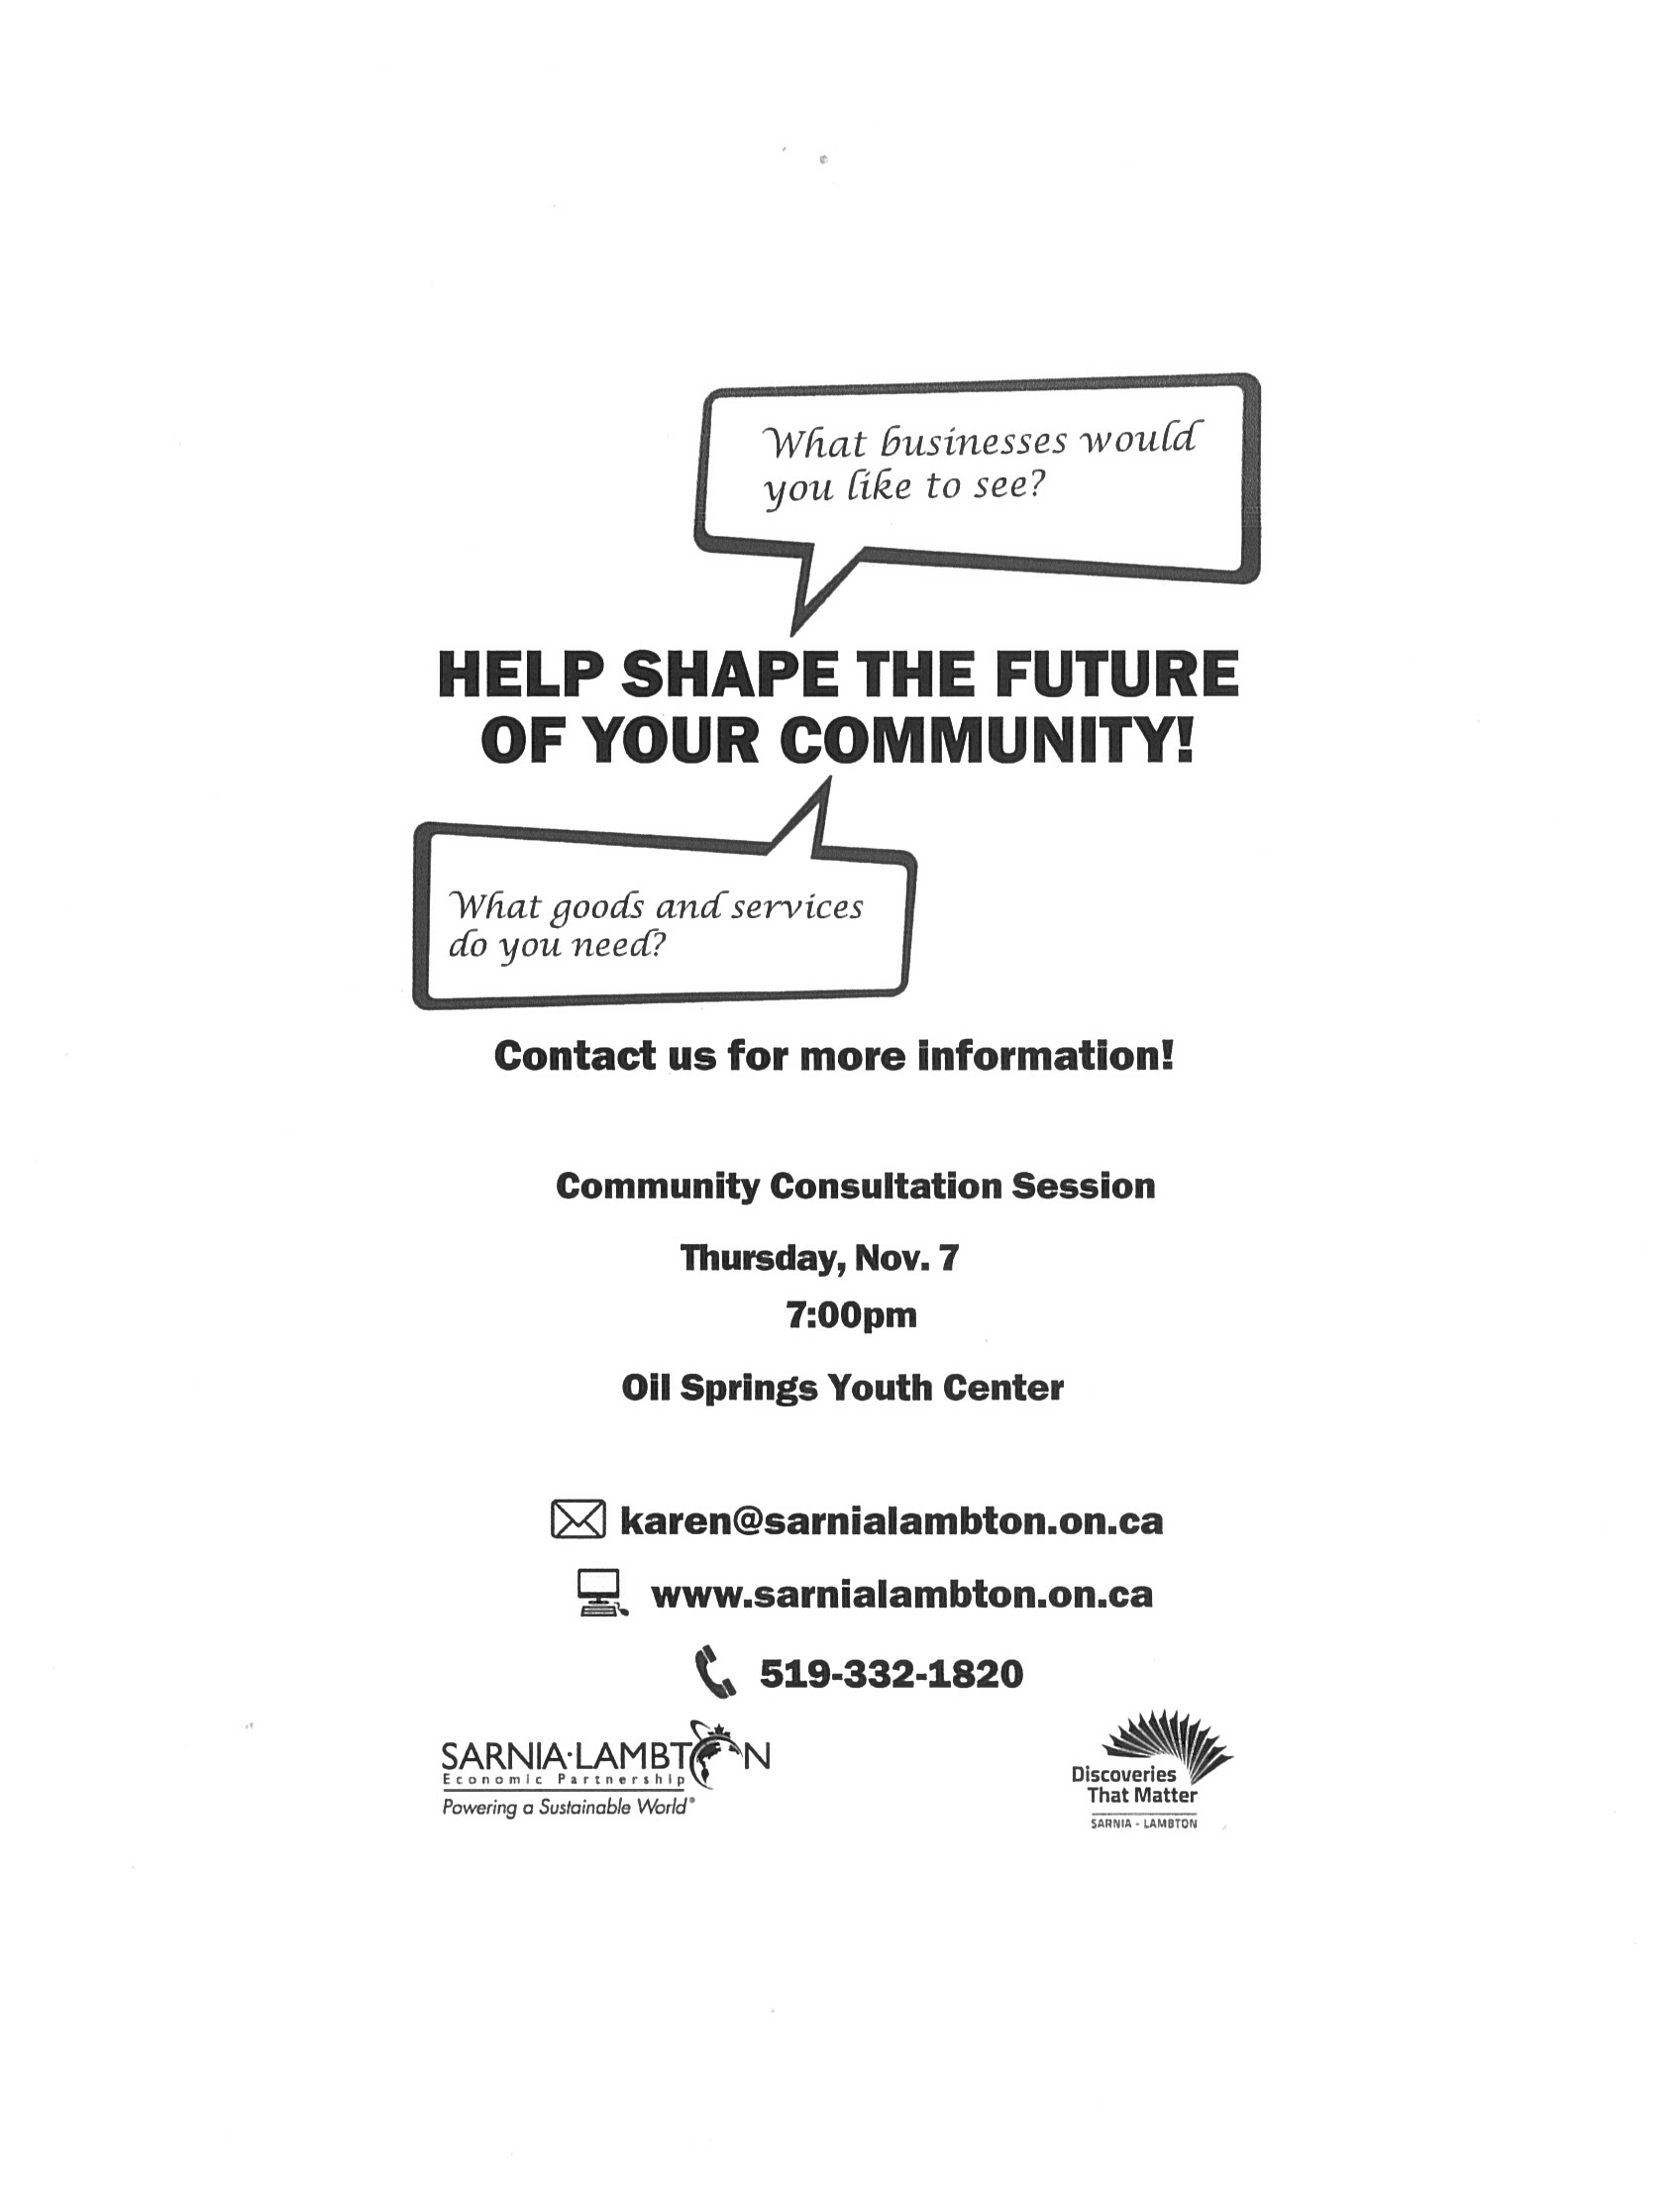 COMMUNITY CONSULTATION SESSION @ Oil Springs Youth Centre